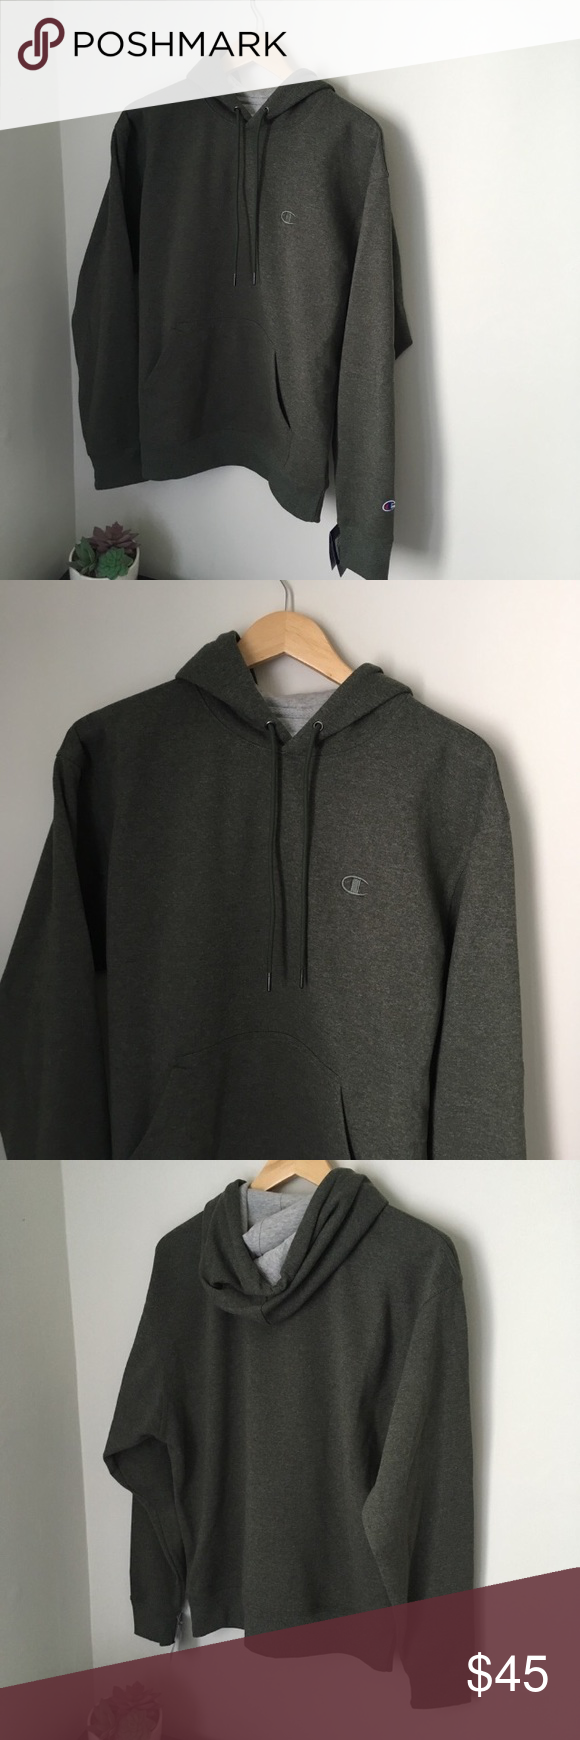 NWT olive Champion Hoodie NWT olive green champion hoodie  Supreme condition  Brand new with tags  Fits perfect to size  Check out the rest of my closet  Offers are welcome   Vintage vtg retro 90s Champion Shirts Sweatshirts & Hoodies #championhoodie NWT olive Champion Hoodie NWT olive green champion hoodie  Supreme condition  Brand new with tags  Fits perfect to size  Check out the rest of my closet  Offers are welcome   Vintage vtg retro 90s Champion Shirts Sweatshirts & Hoodies #championhoodie